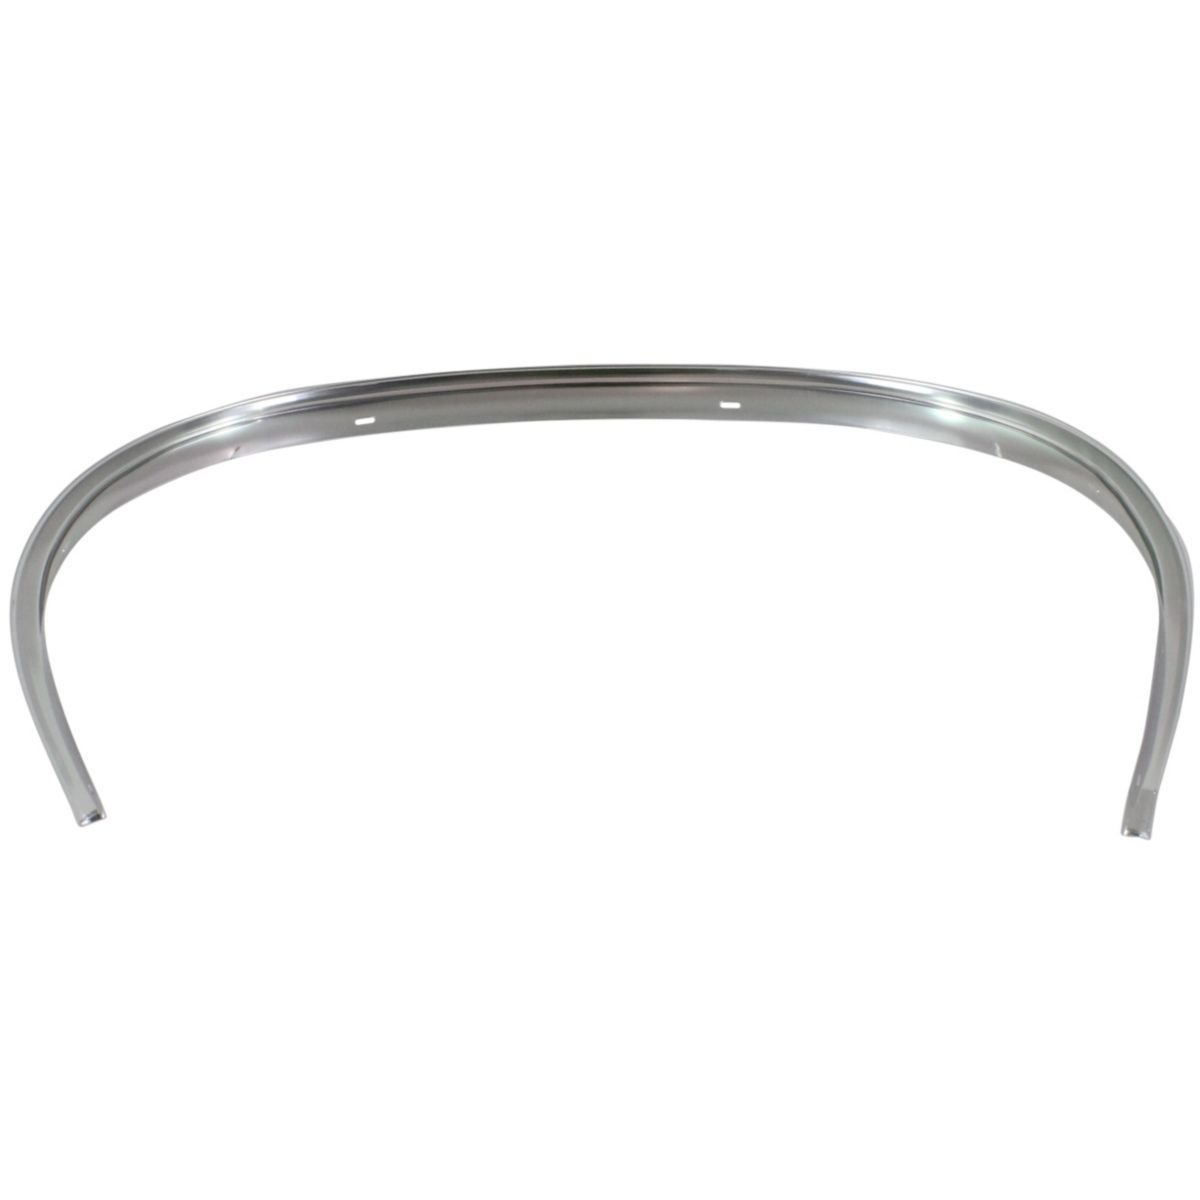 New Fender Molding Rear Driver Left Side Chrome S10 Pickup S15 Chevy LH Hand Diften 110-A2444-X01